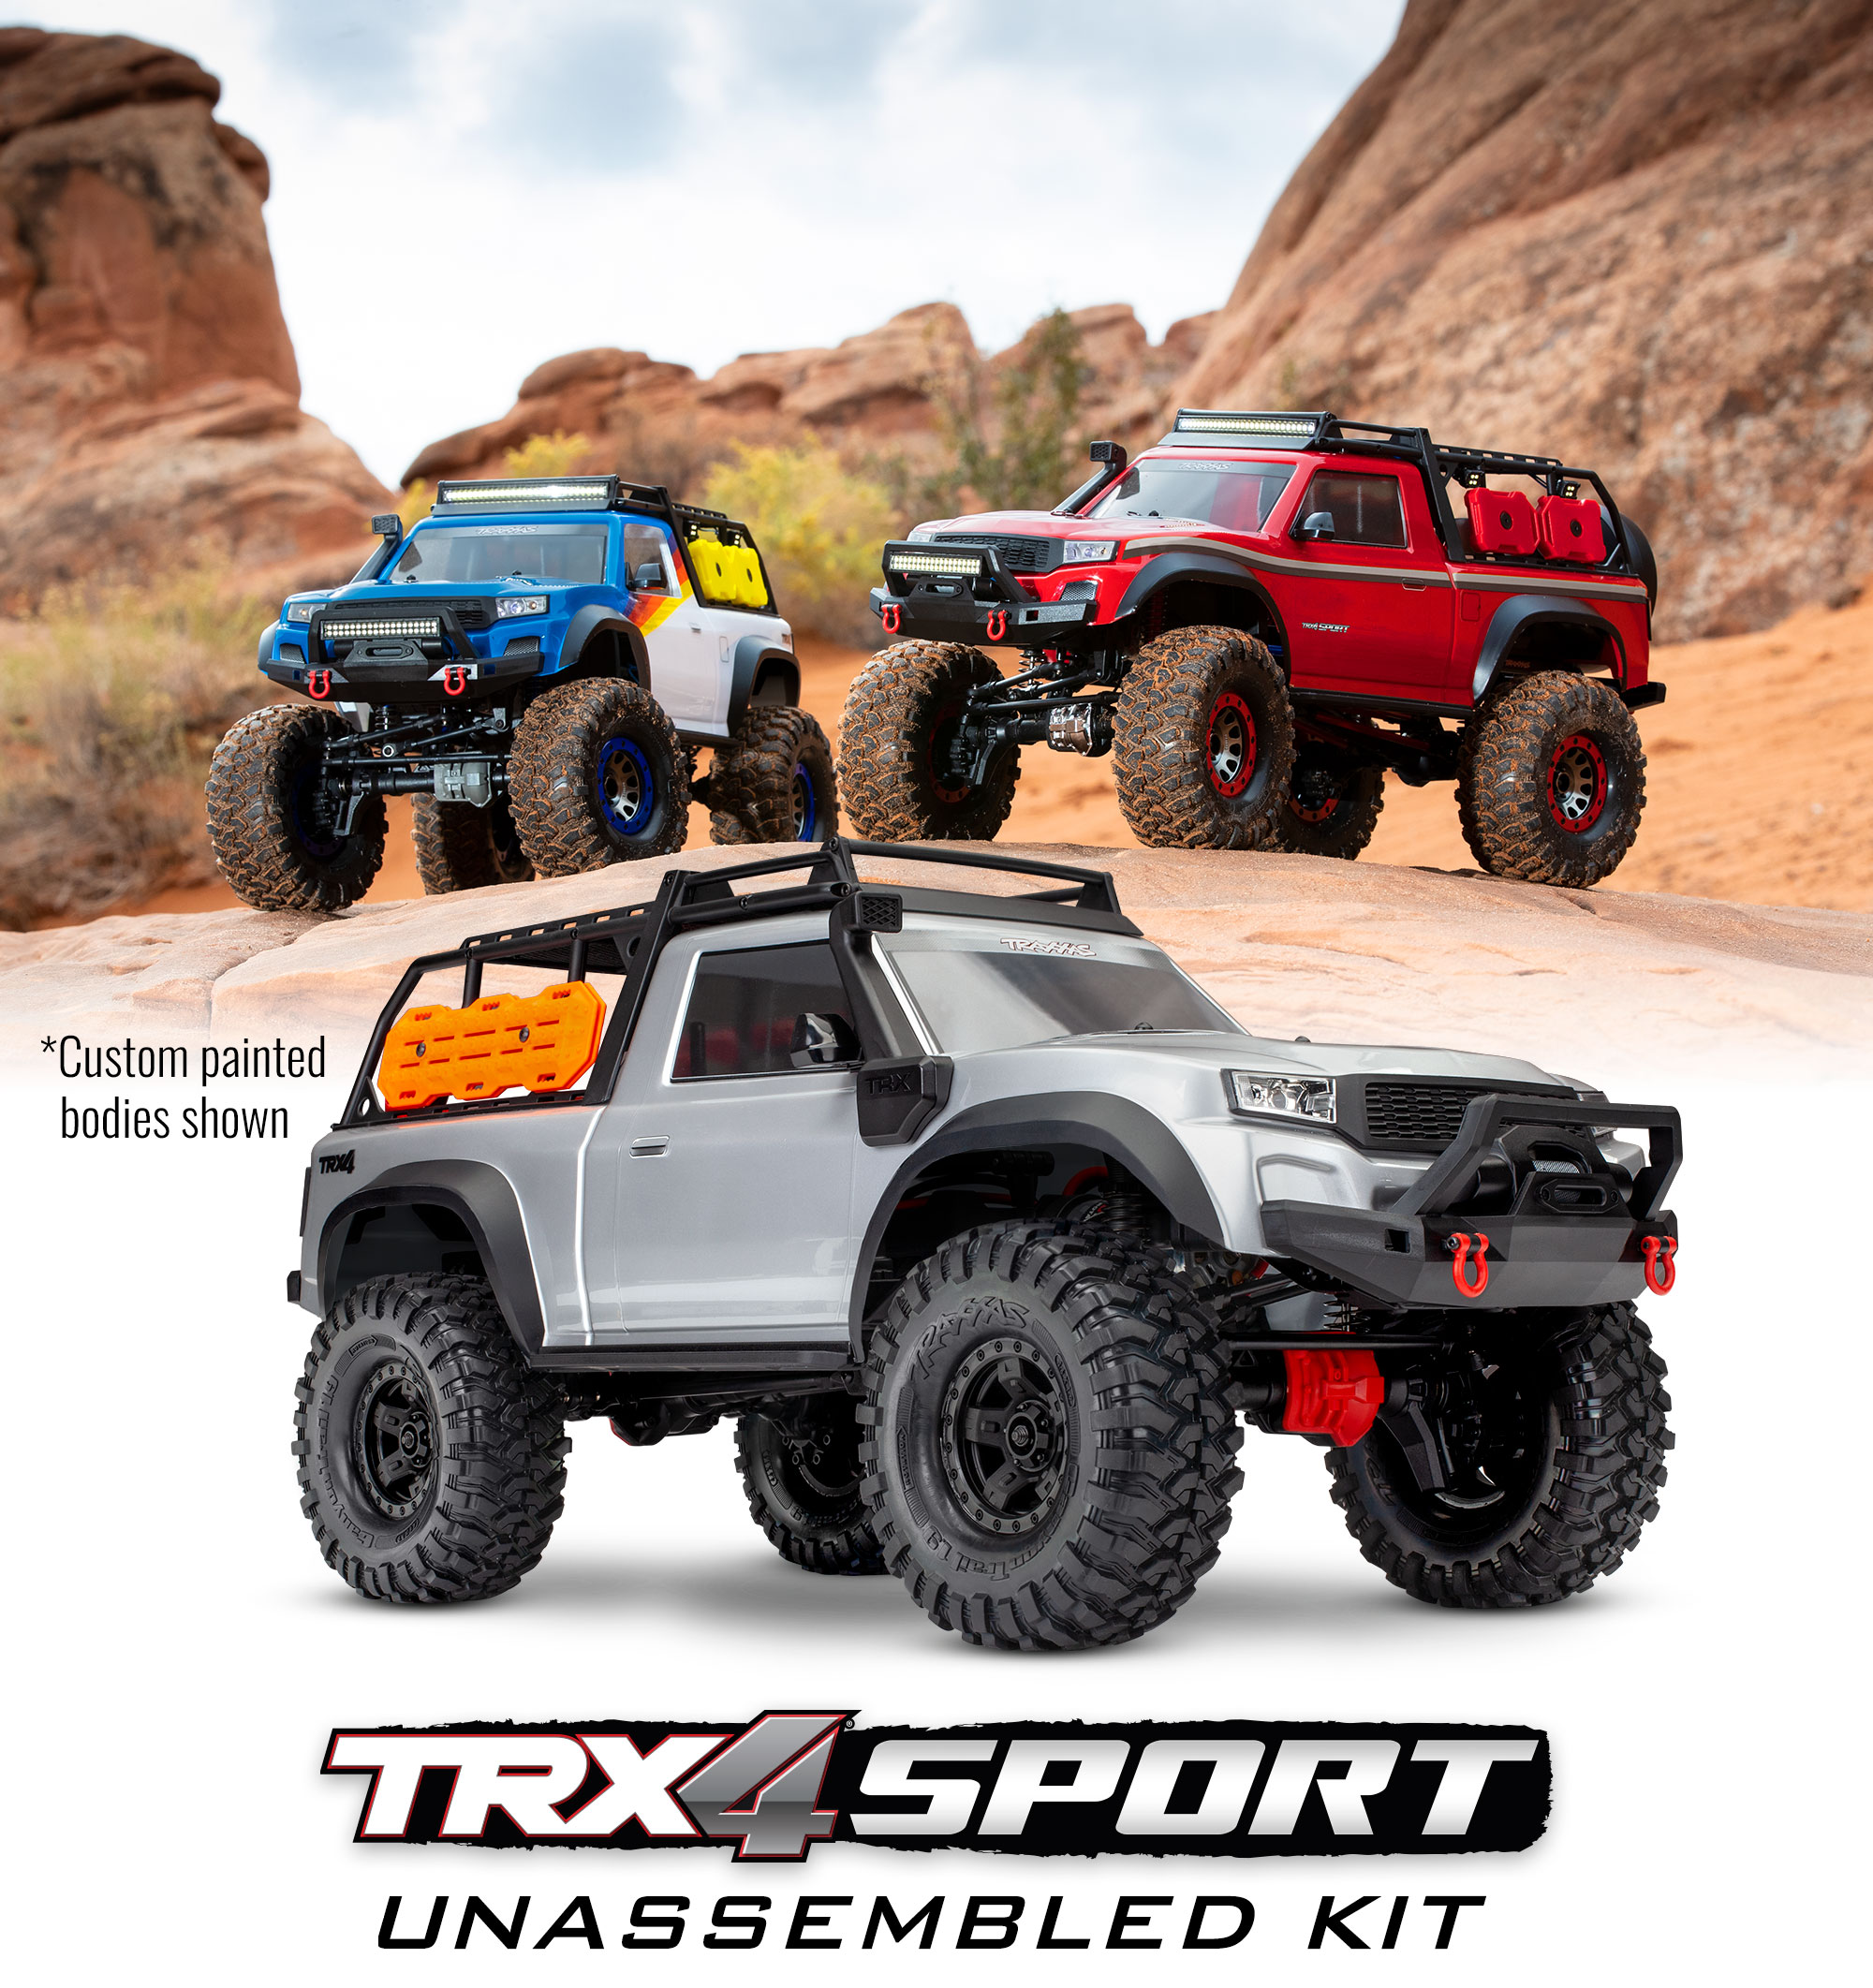 82010-4-TRX-4-Sport-posibilities-are-end